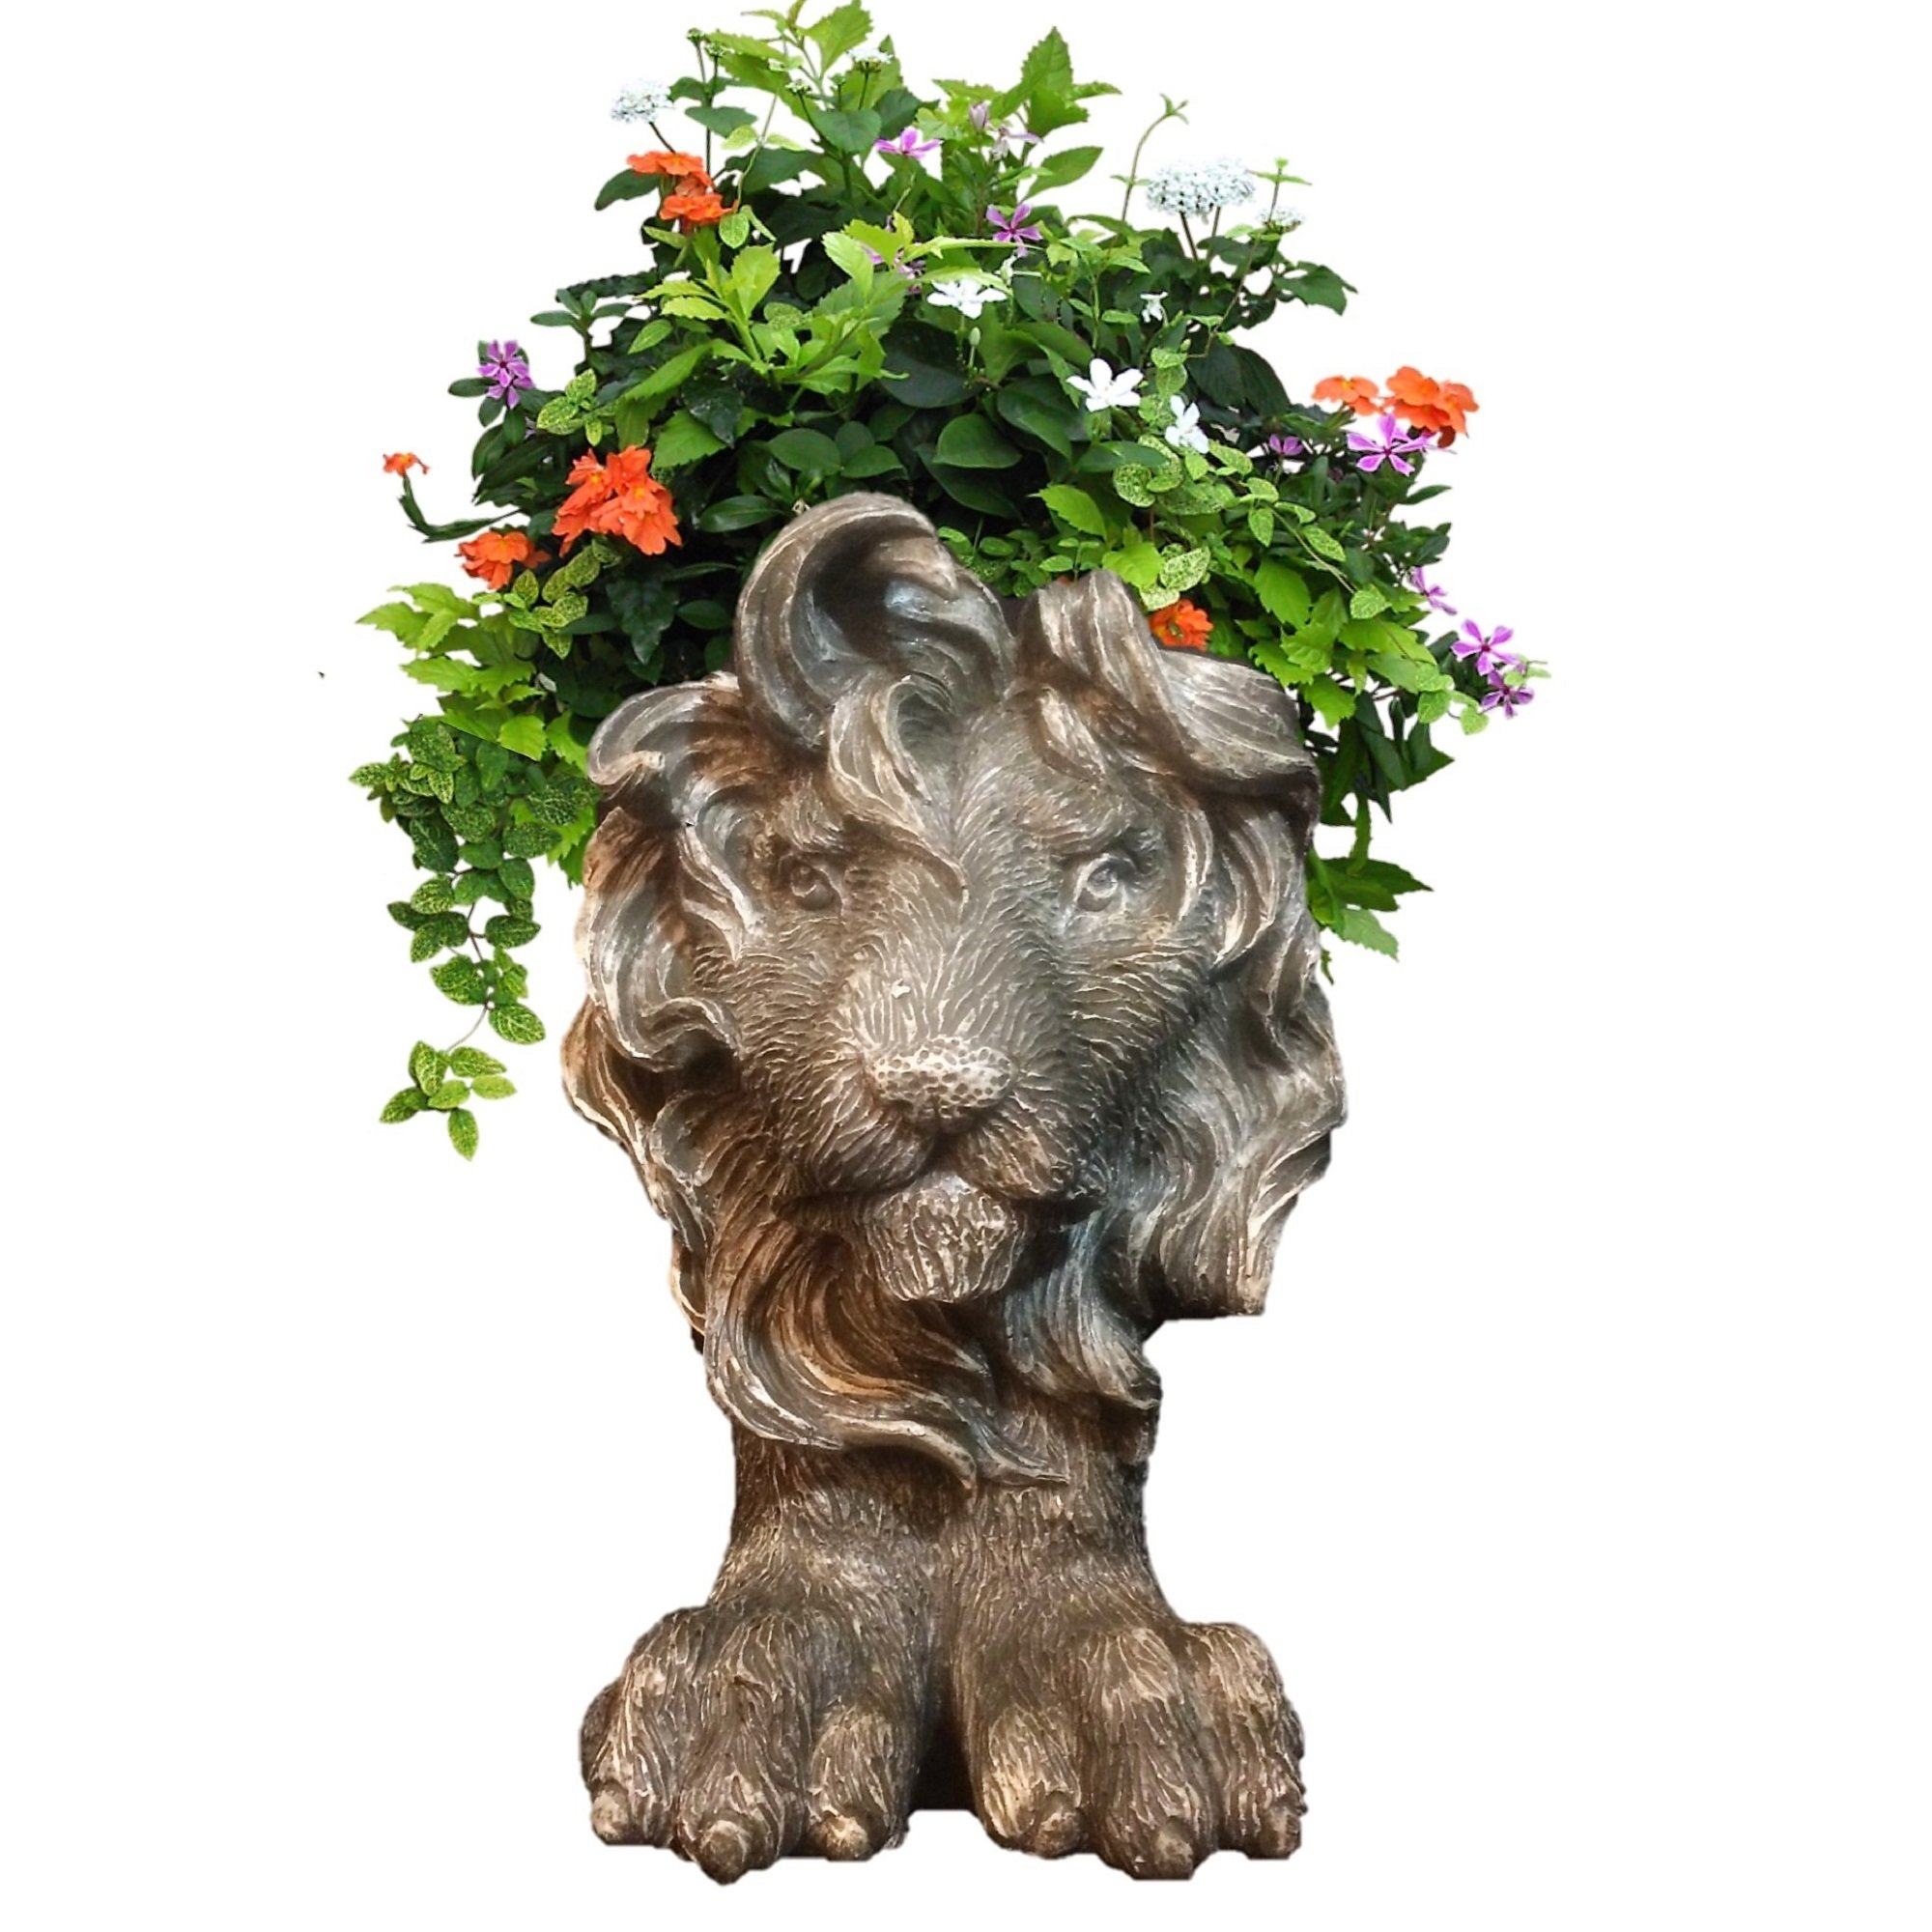 Homestyles 18 in. Graystone Lion Muggly Mascot Animal Statue Planter Holds 8 in. Pot